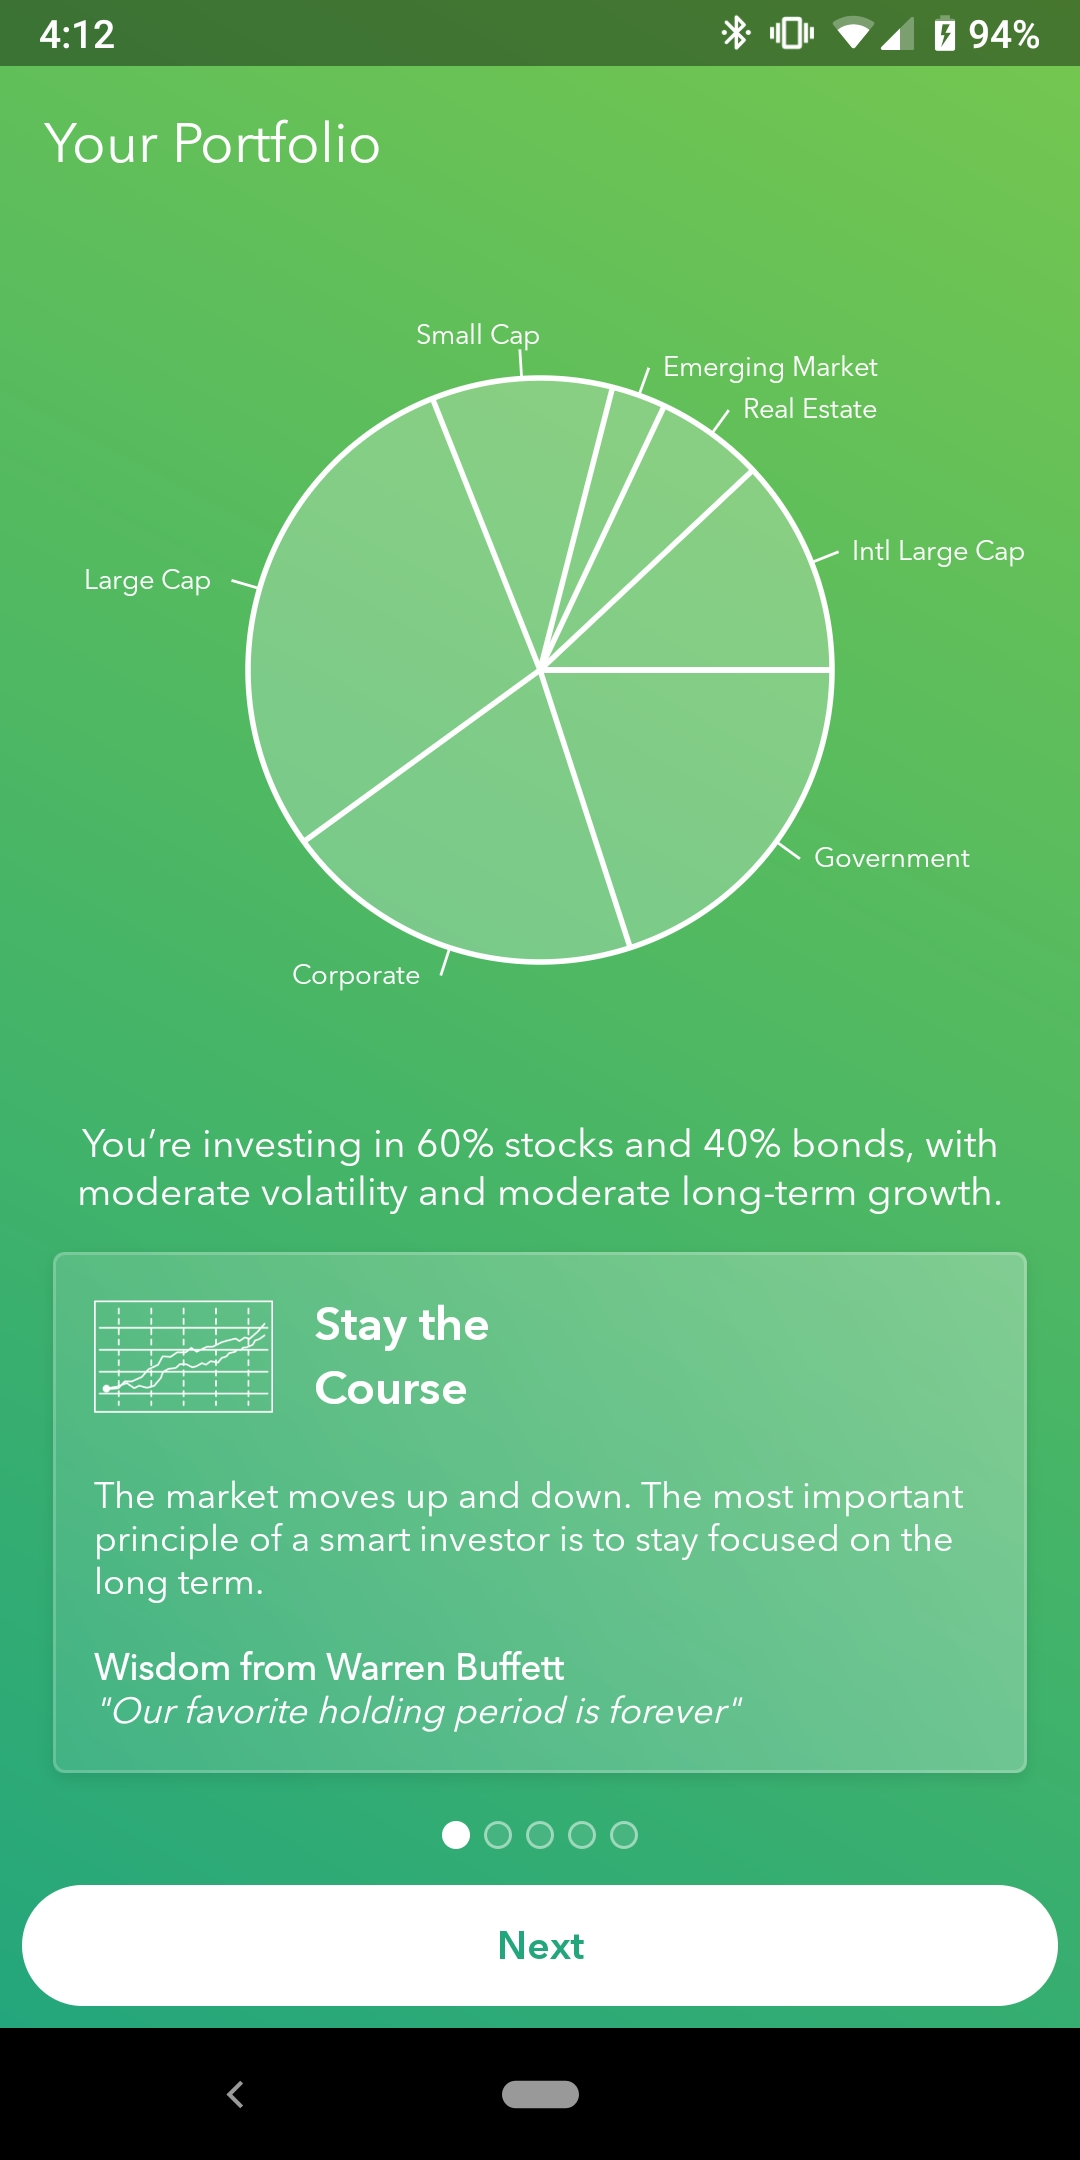 Acorn's mobile app shows users their recommended portfolio